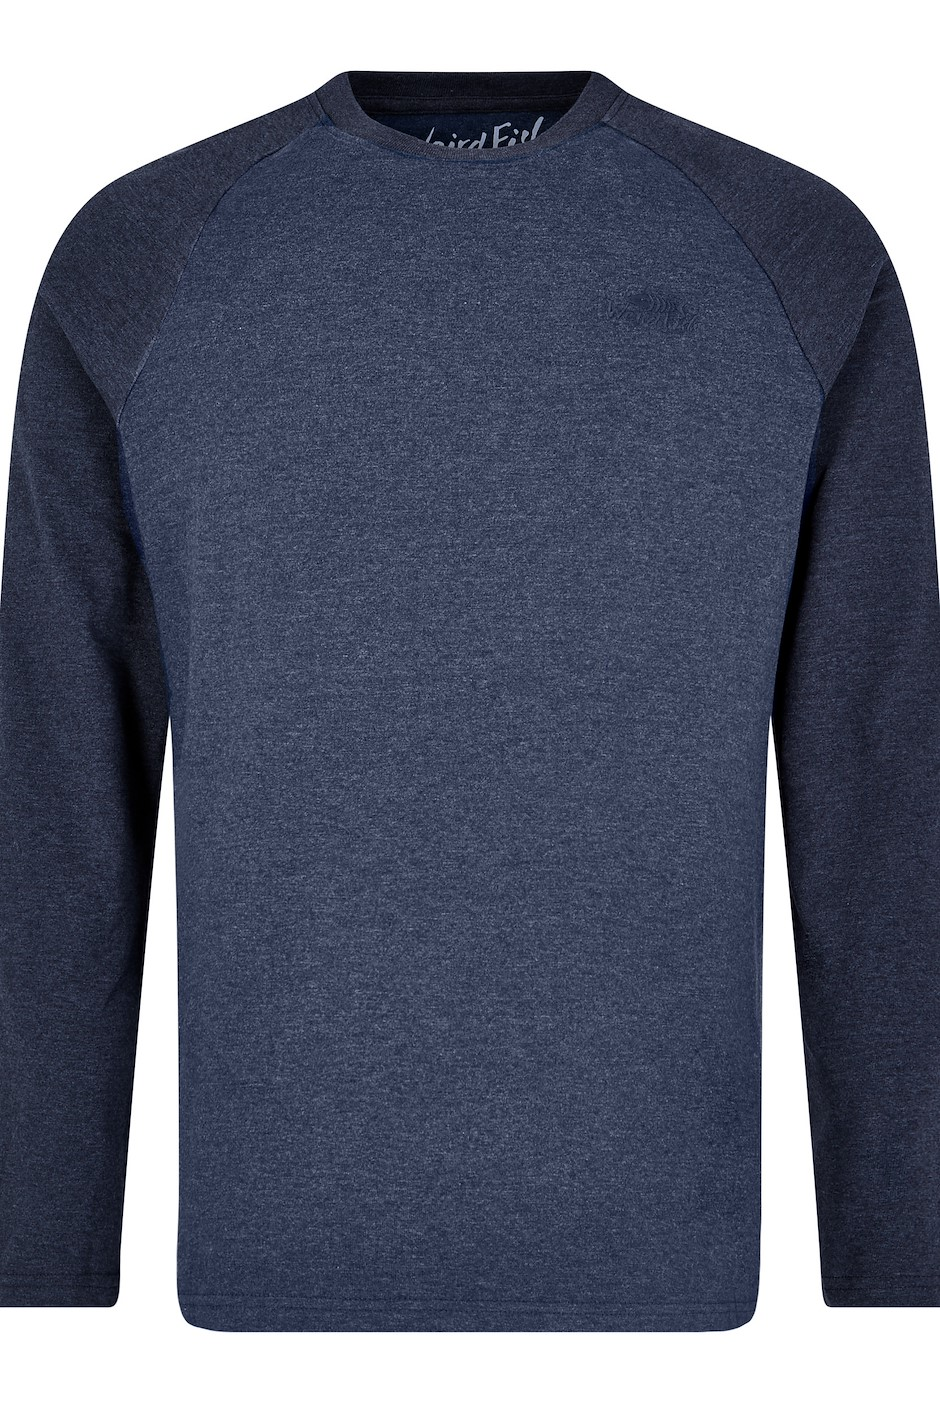 Askill Plain Long Sleeve T-Shirt Navy Marl